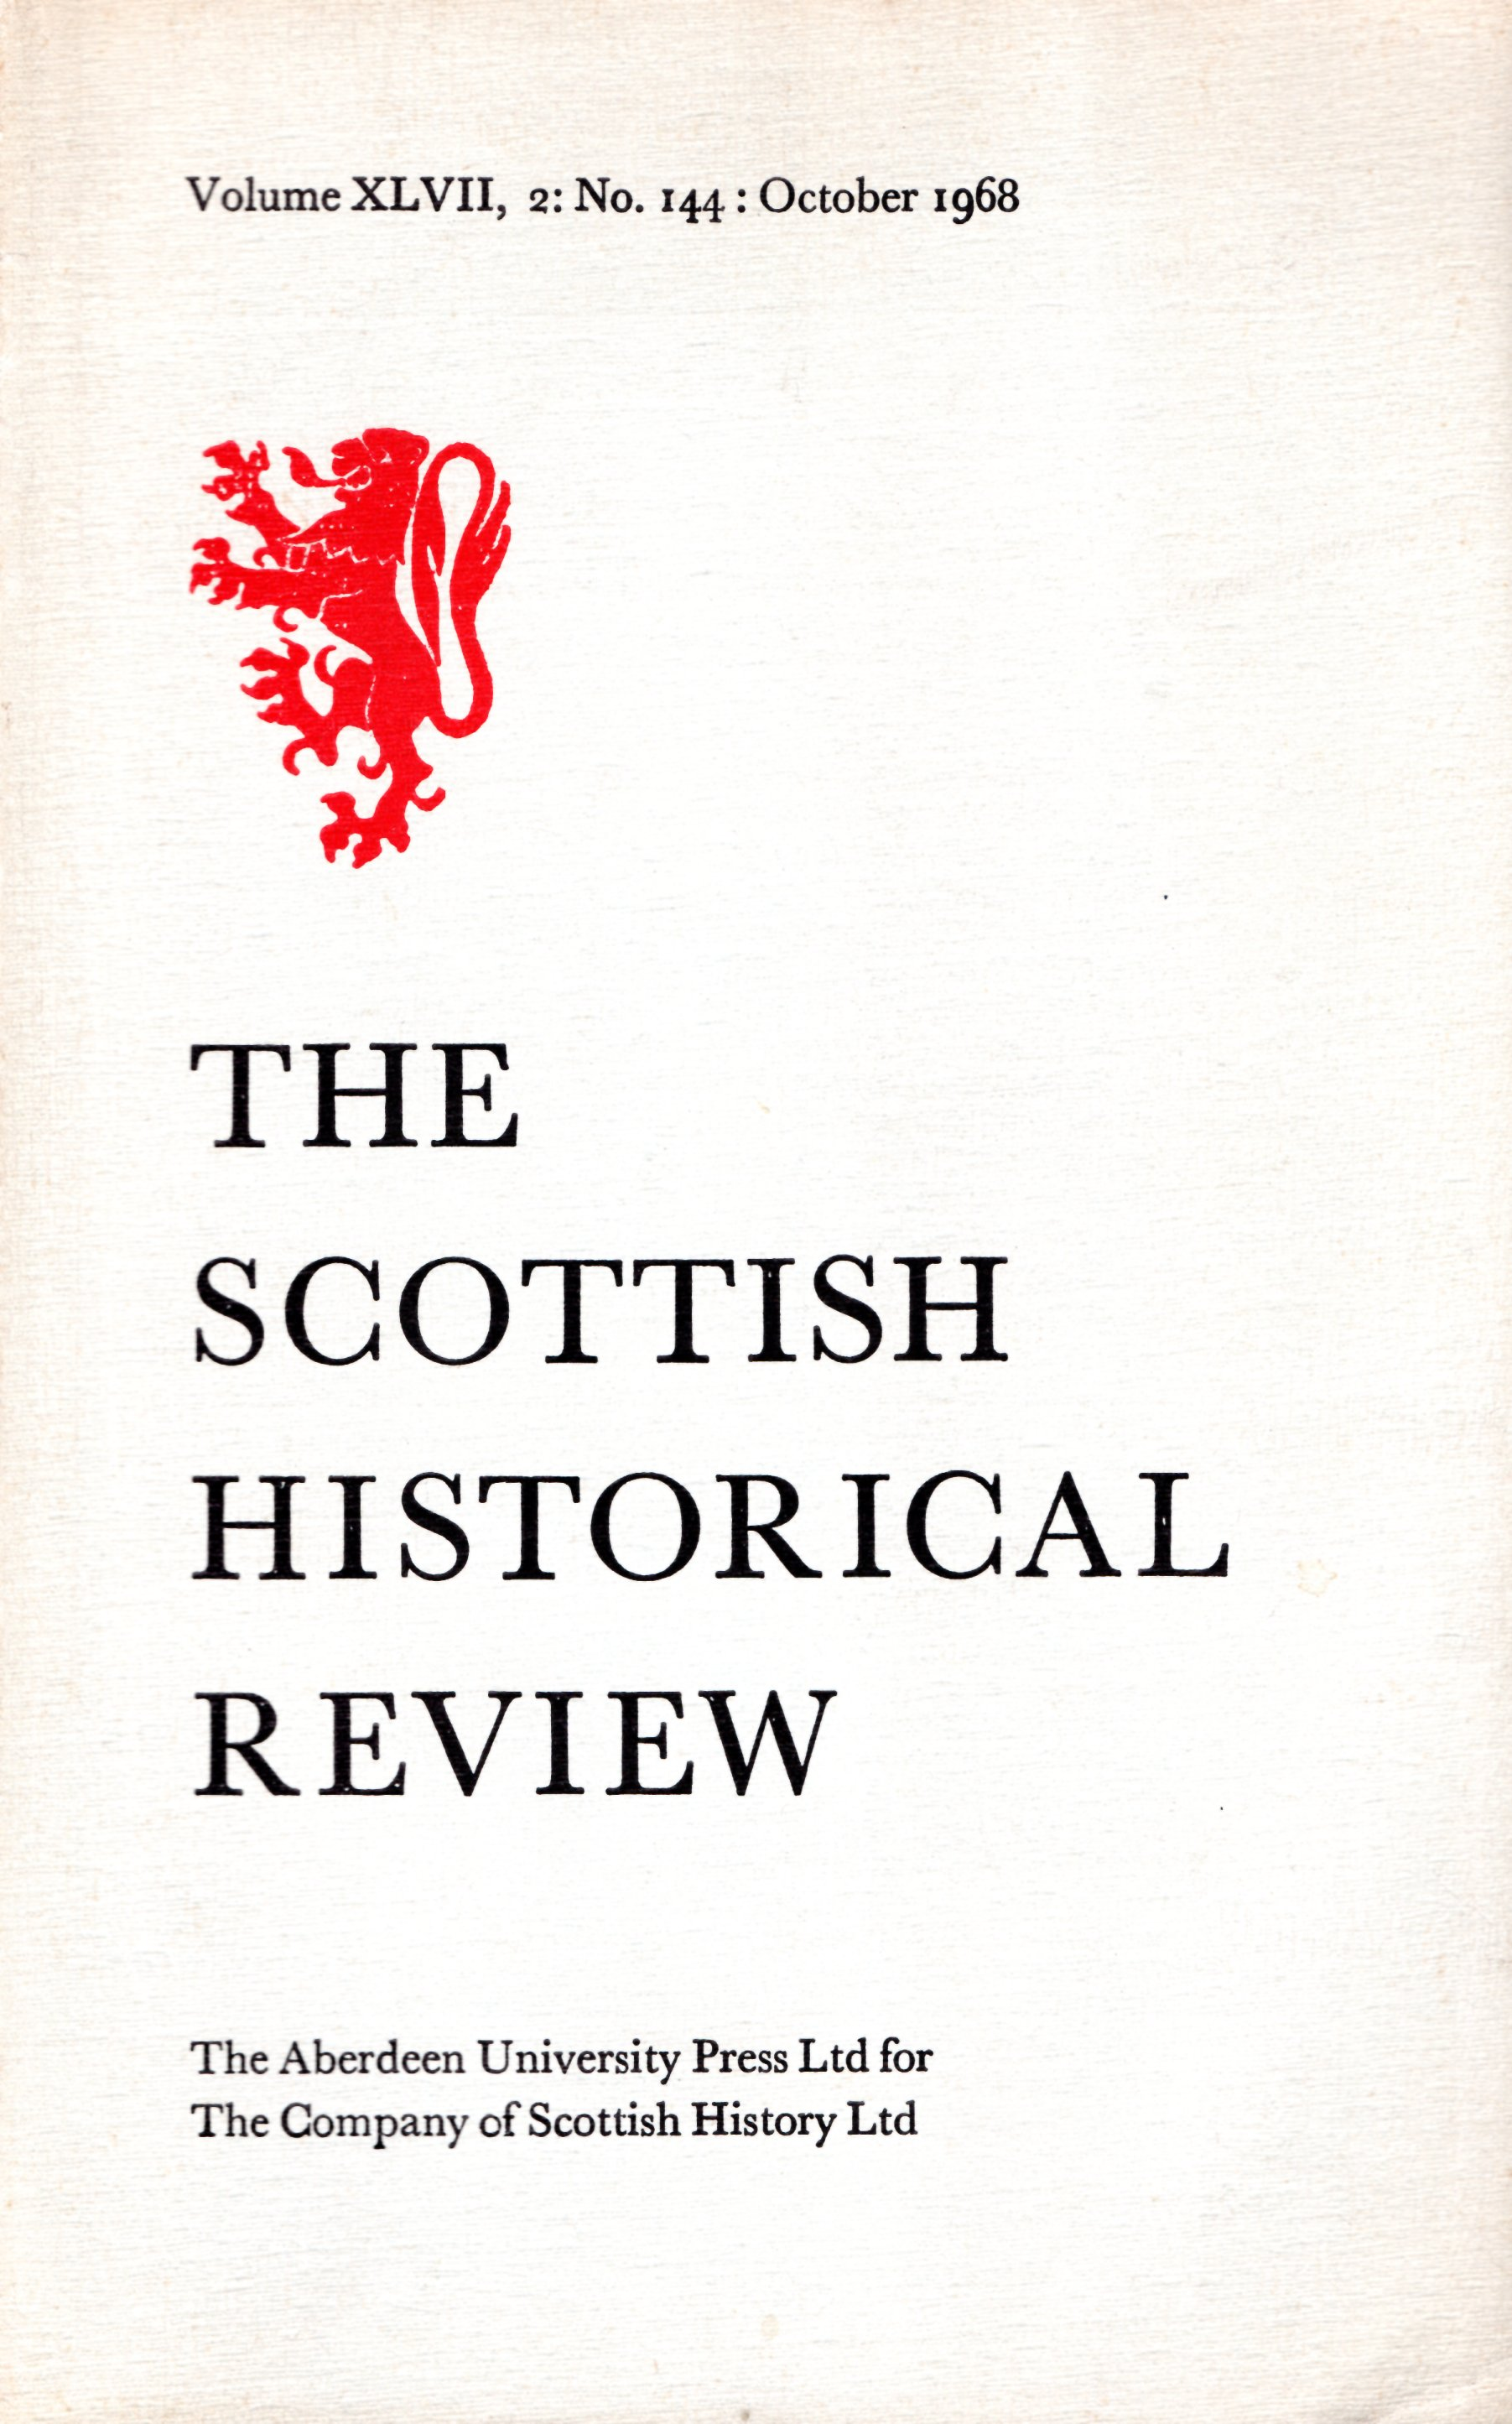 Image for The Scottish Historical Review Volume XLVII, 2: No. 144: October 1968